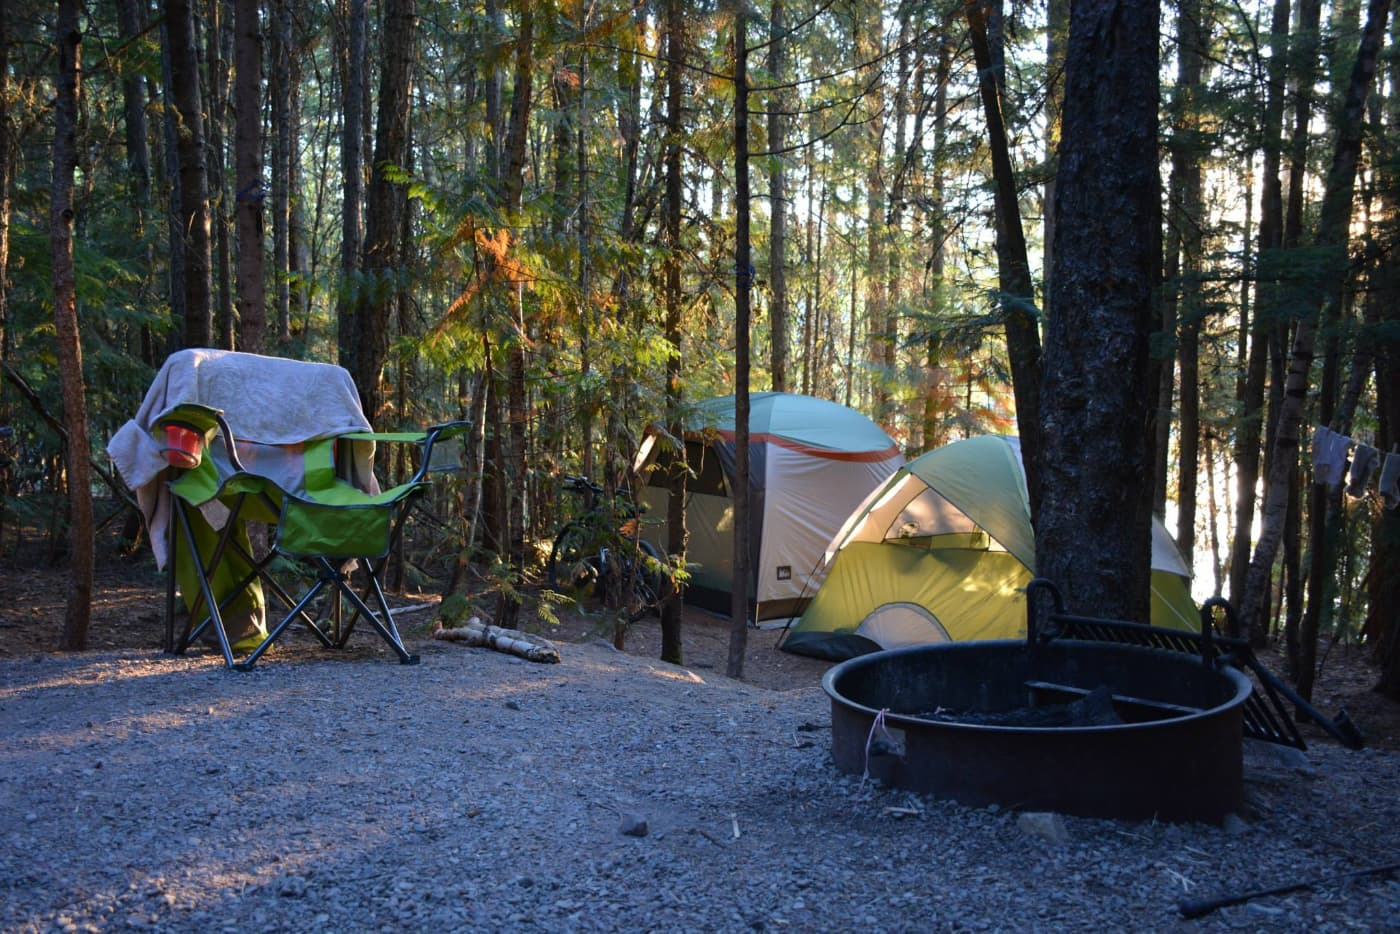 wooded campsite at fish creek campground with two tents and a camping chair behind a fire ring